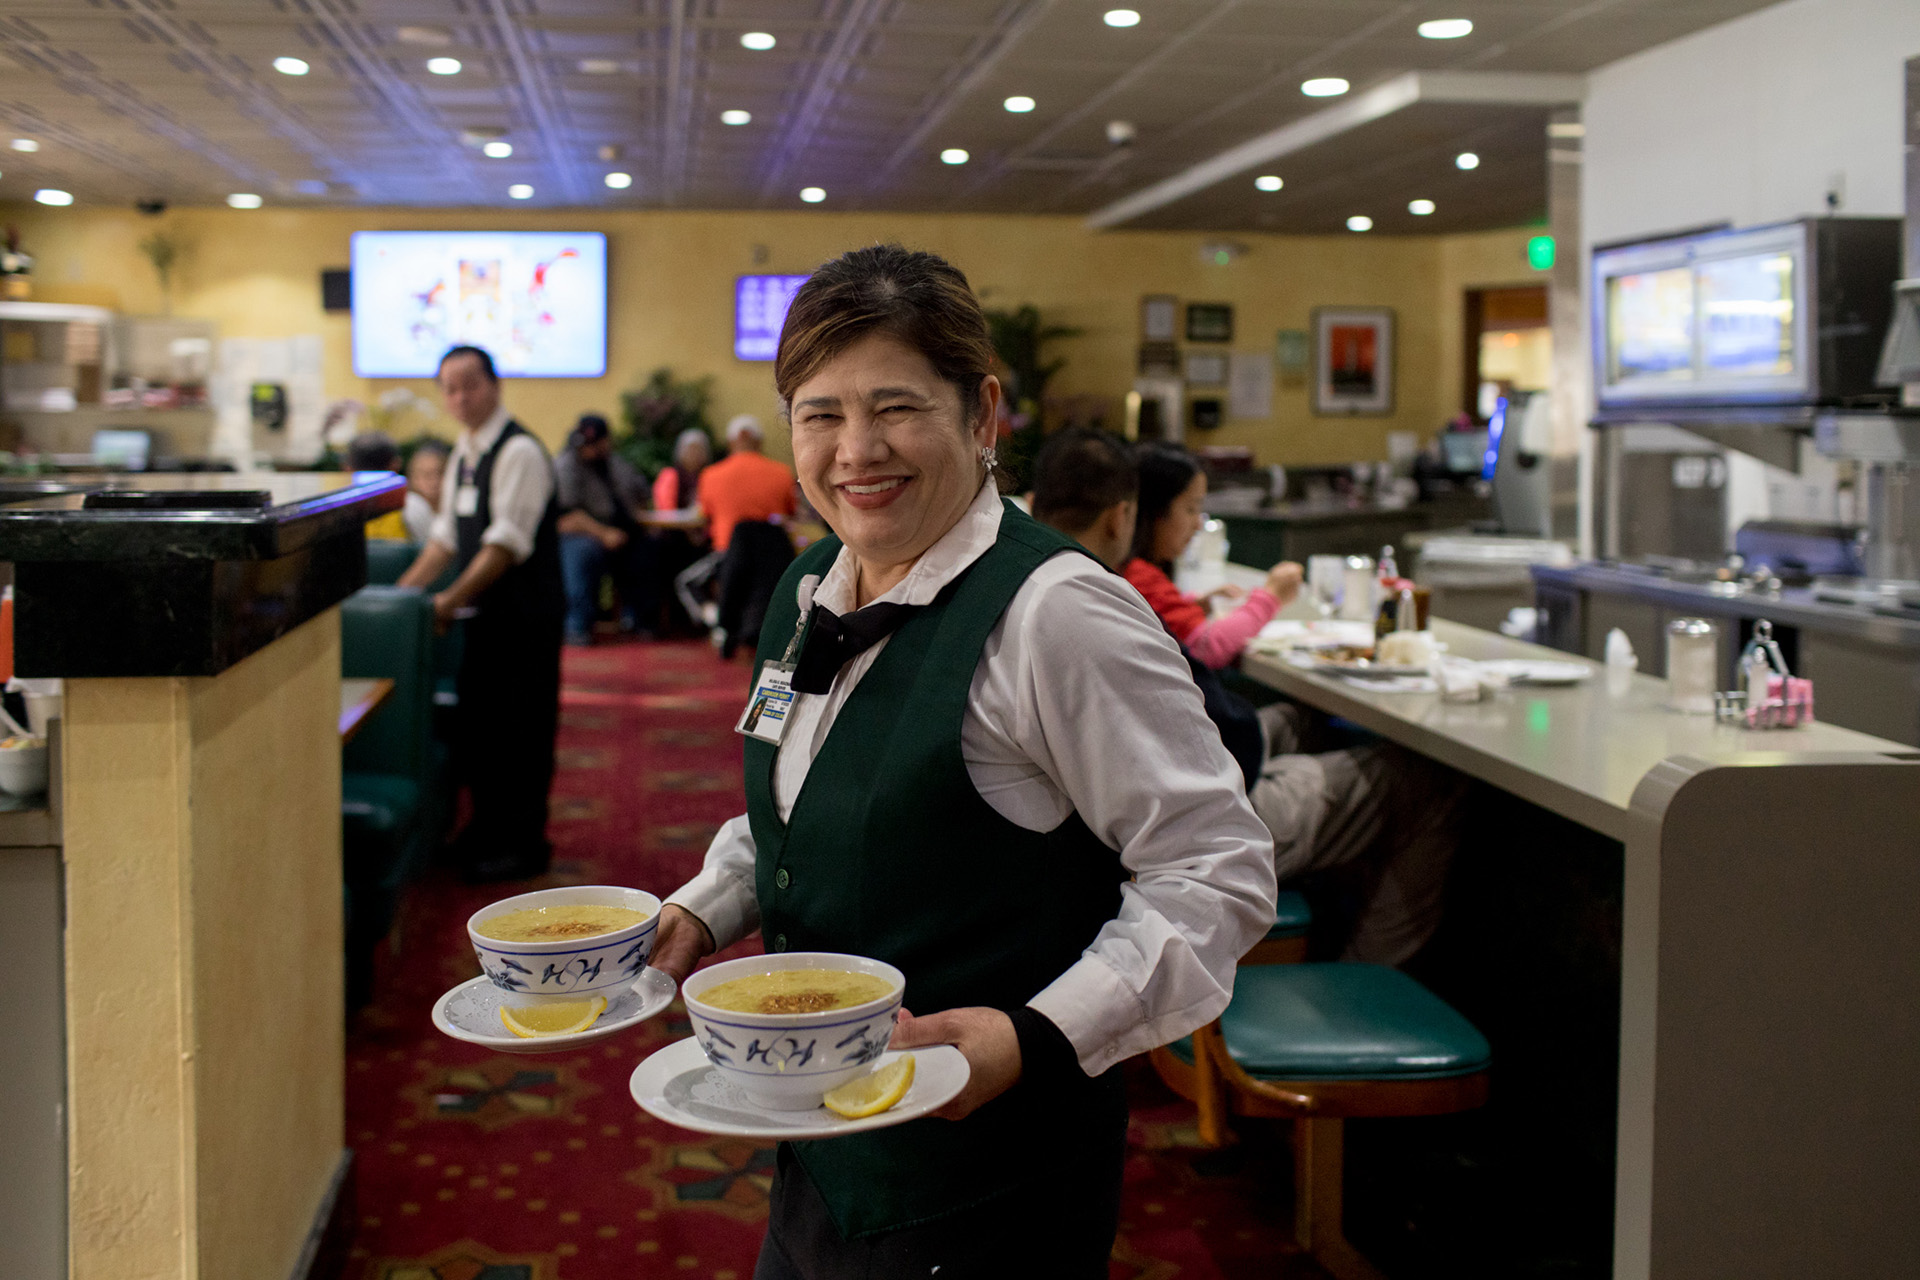 Lucky Chances casino has an all-ages cafe that serves Filipino classics along with American diner staples. Server Melissa Deguzman carries goto (beef tripe and garlic rice porridge) to customers.